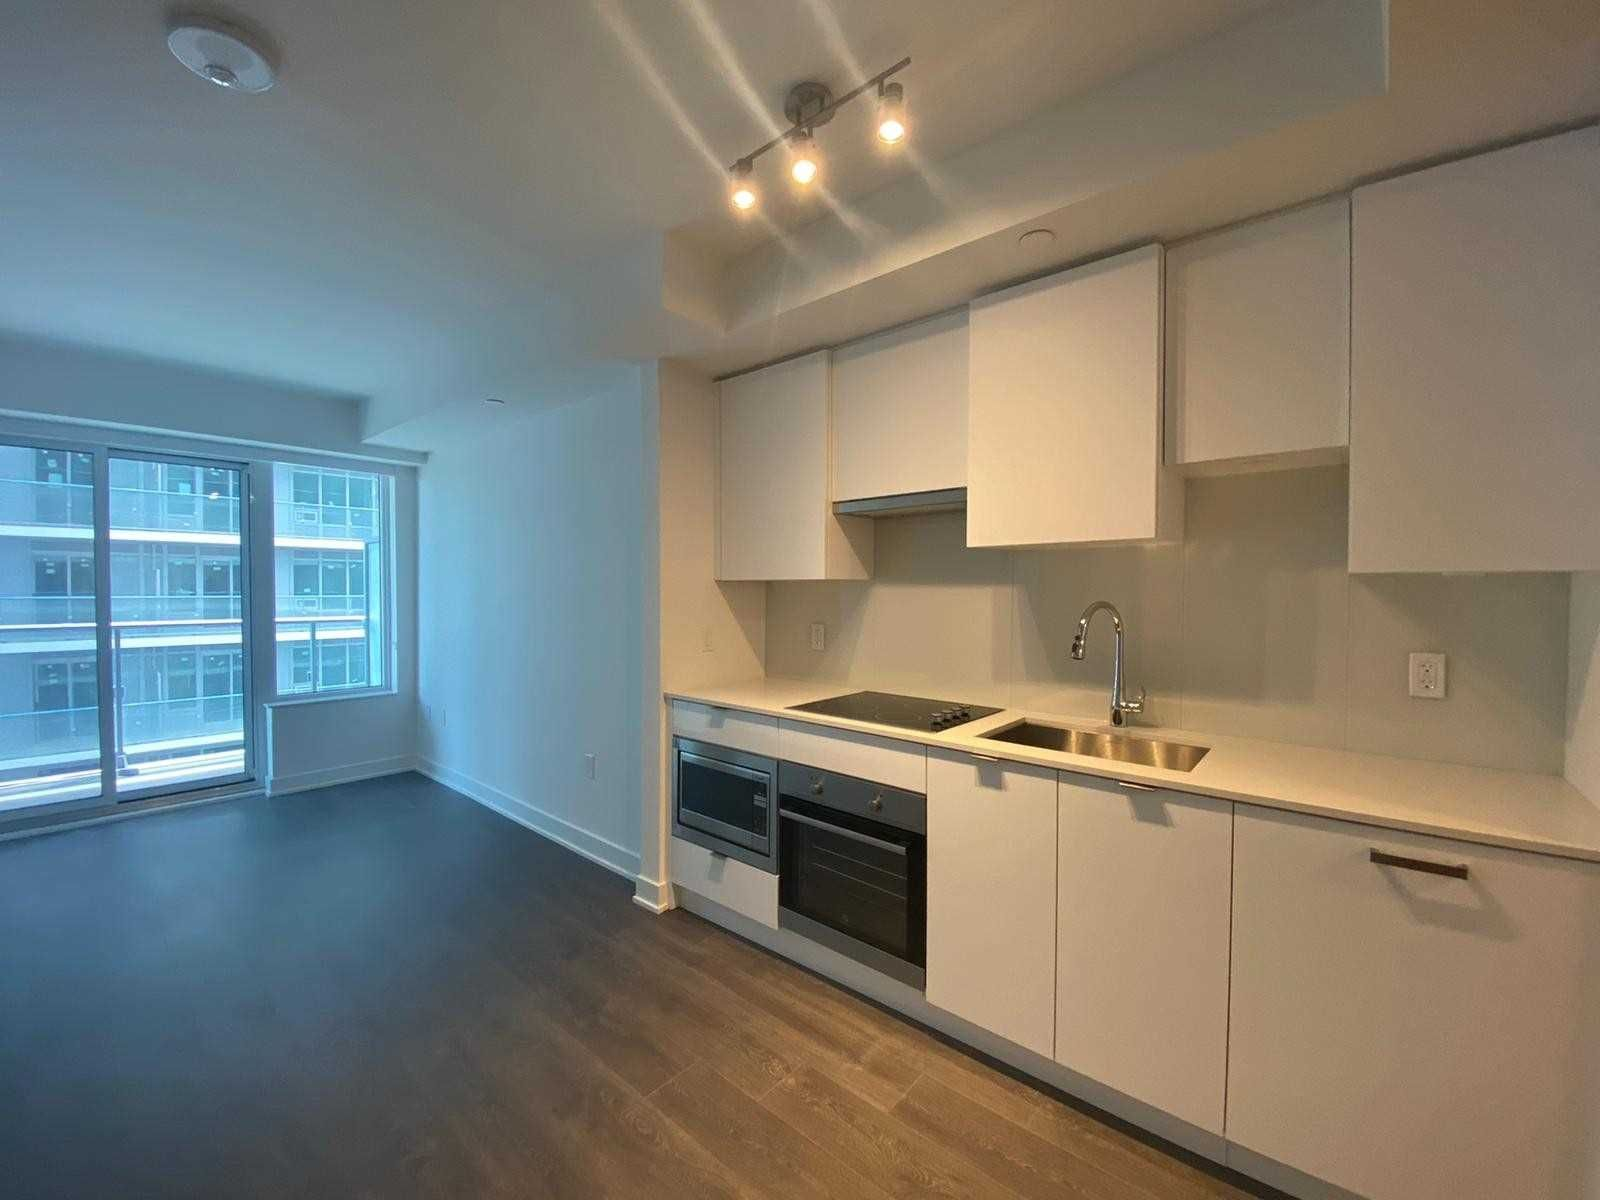 99 Broadway Ave, unit 2007 Nt for rent in Toronto - image #2